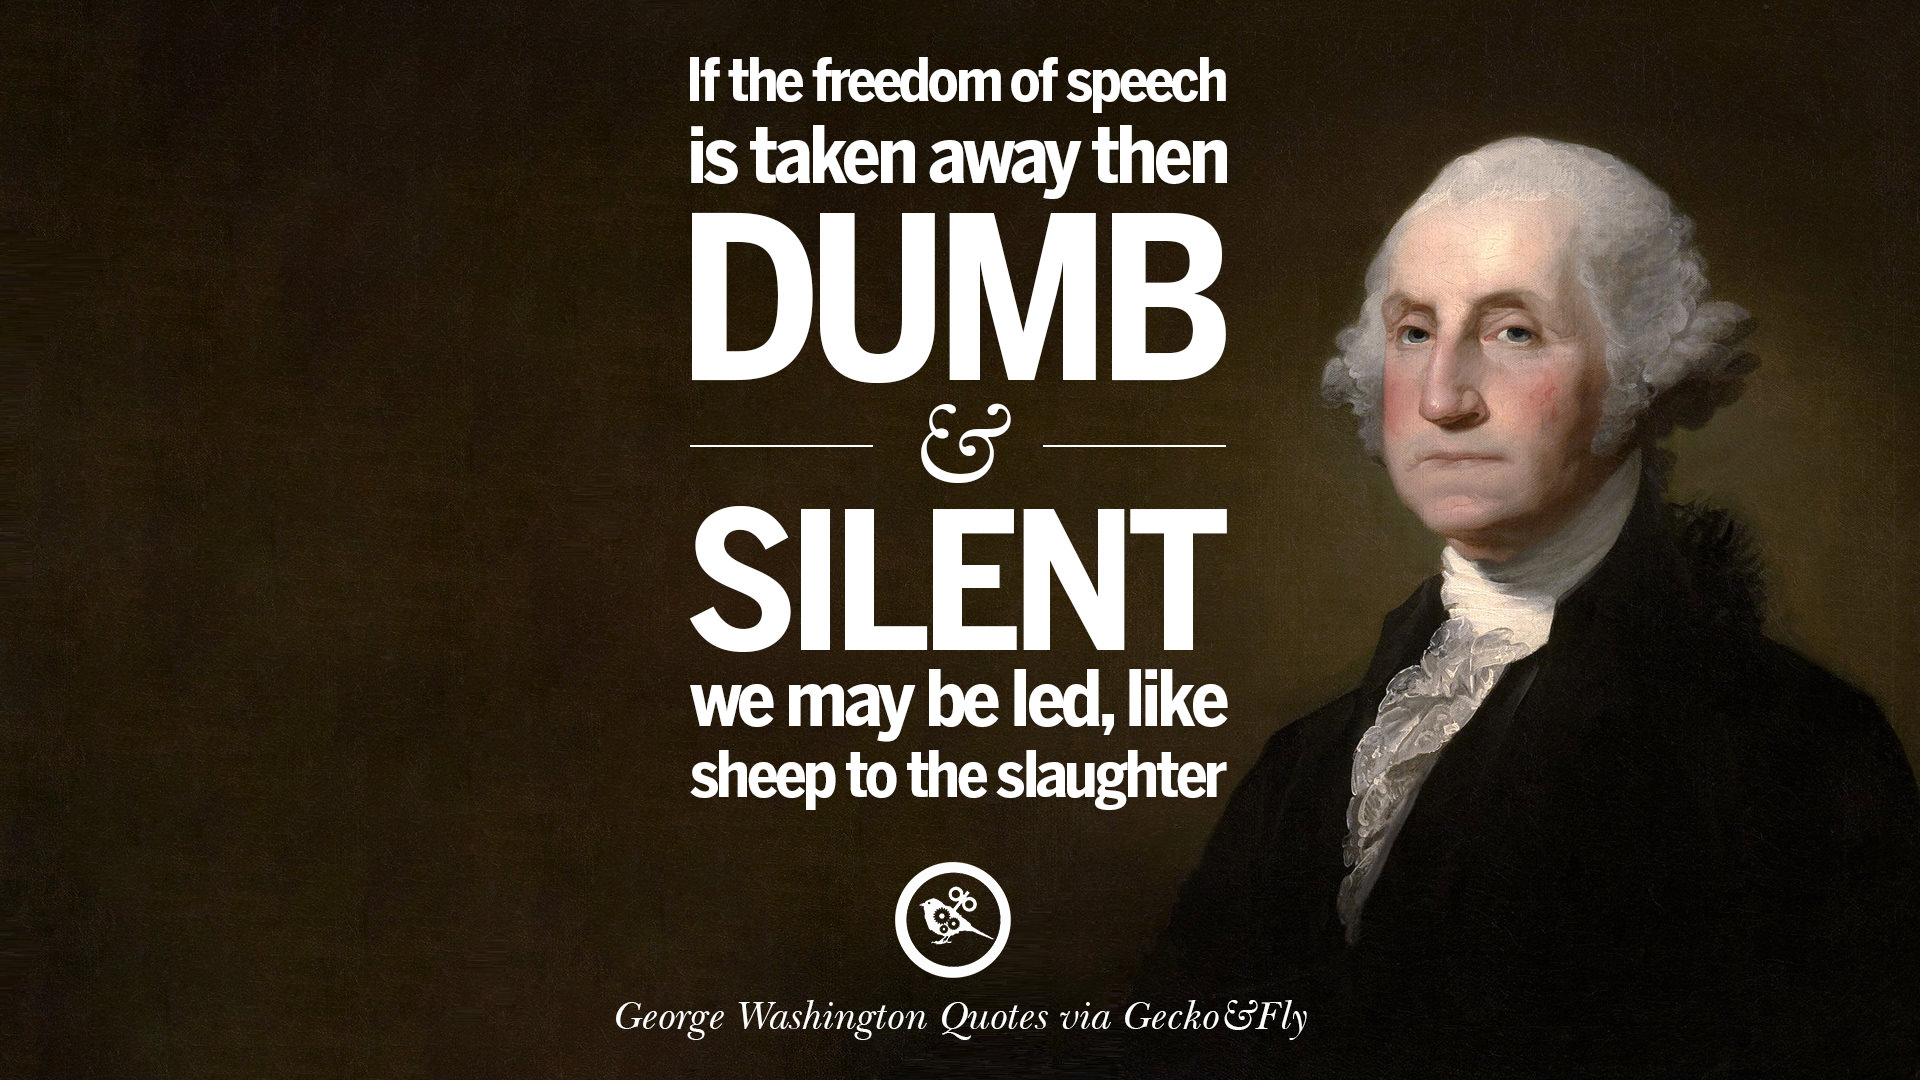 Freedom Of Speech Quotes 20 Famous George Washington Quotes On Freedom Faith Religion